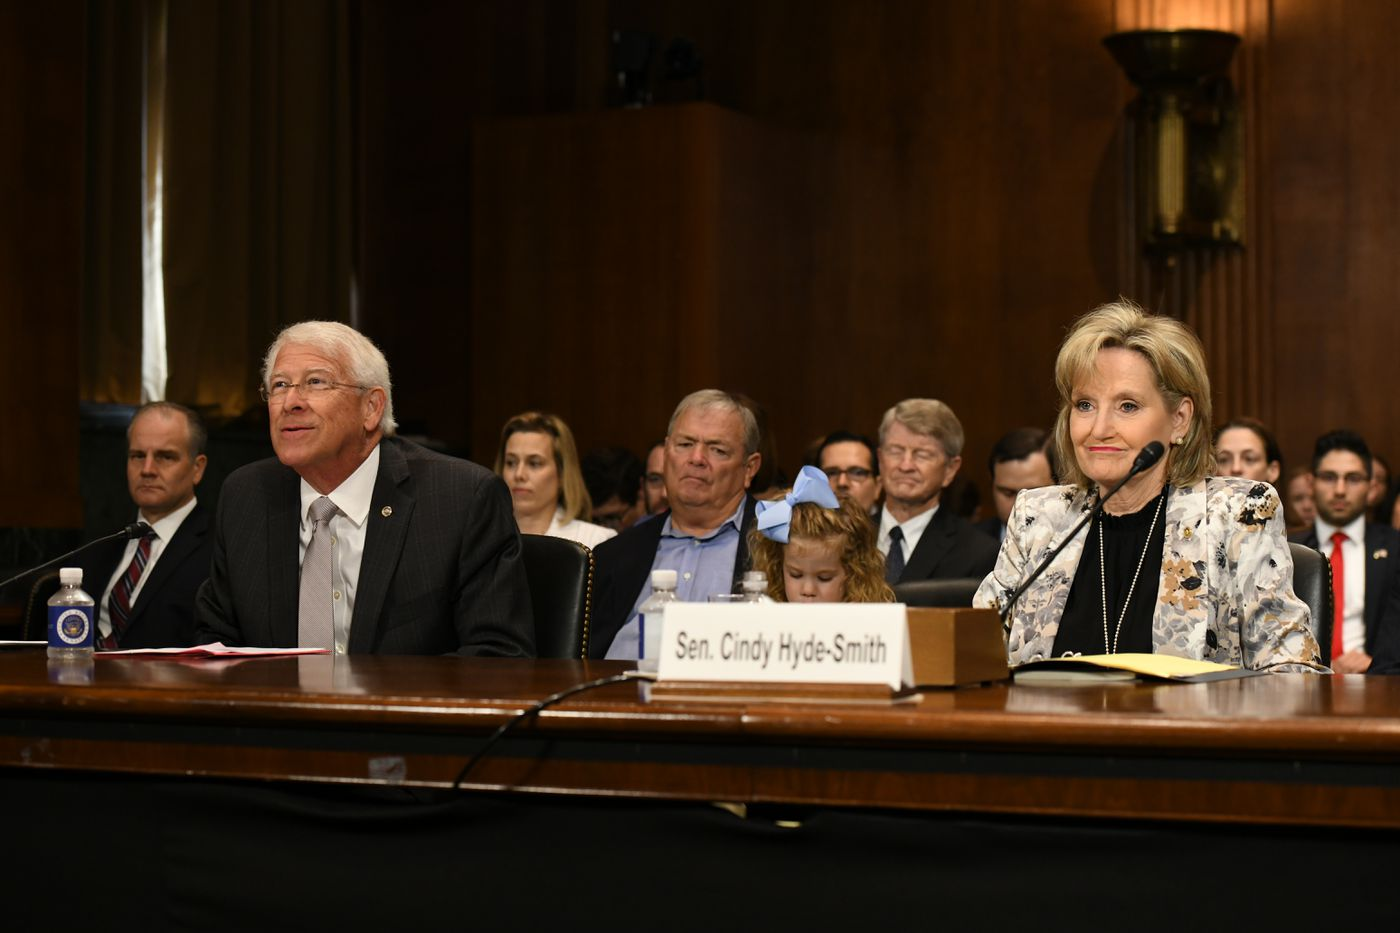 Mississippi's U.S. senators, Roger Wicker and Cindy Hyde-Smith, delivered high praise of U.S. District Court Judge Sul Ozerden to their colleagues in Washington Wednesday.